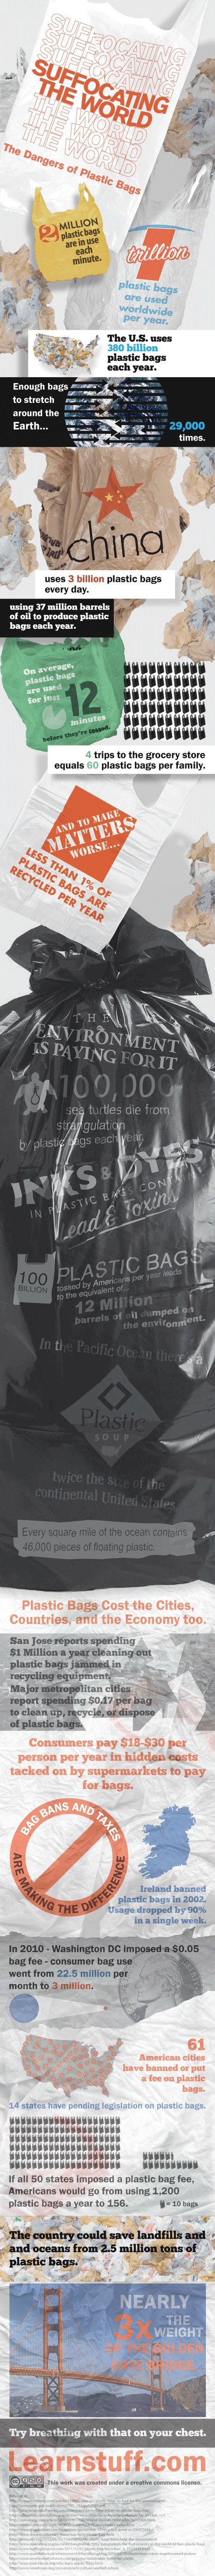 Ecology of Plastic Bags | AP Human Geography Finnegan | Scoop.it